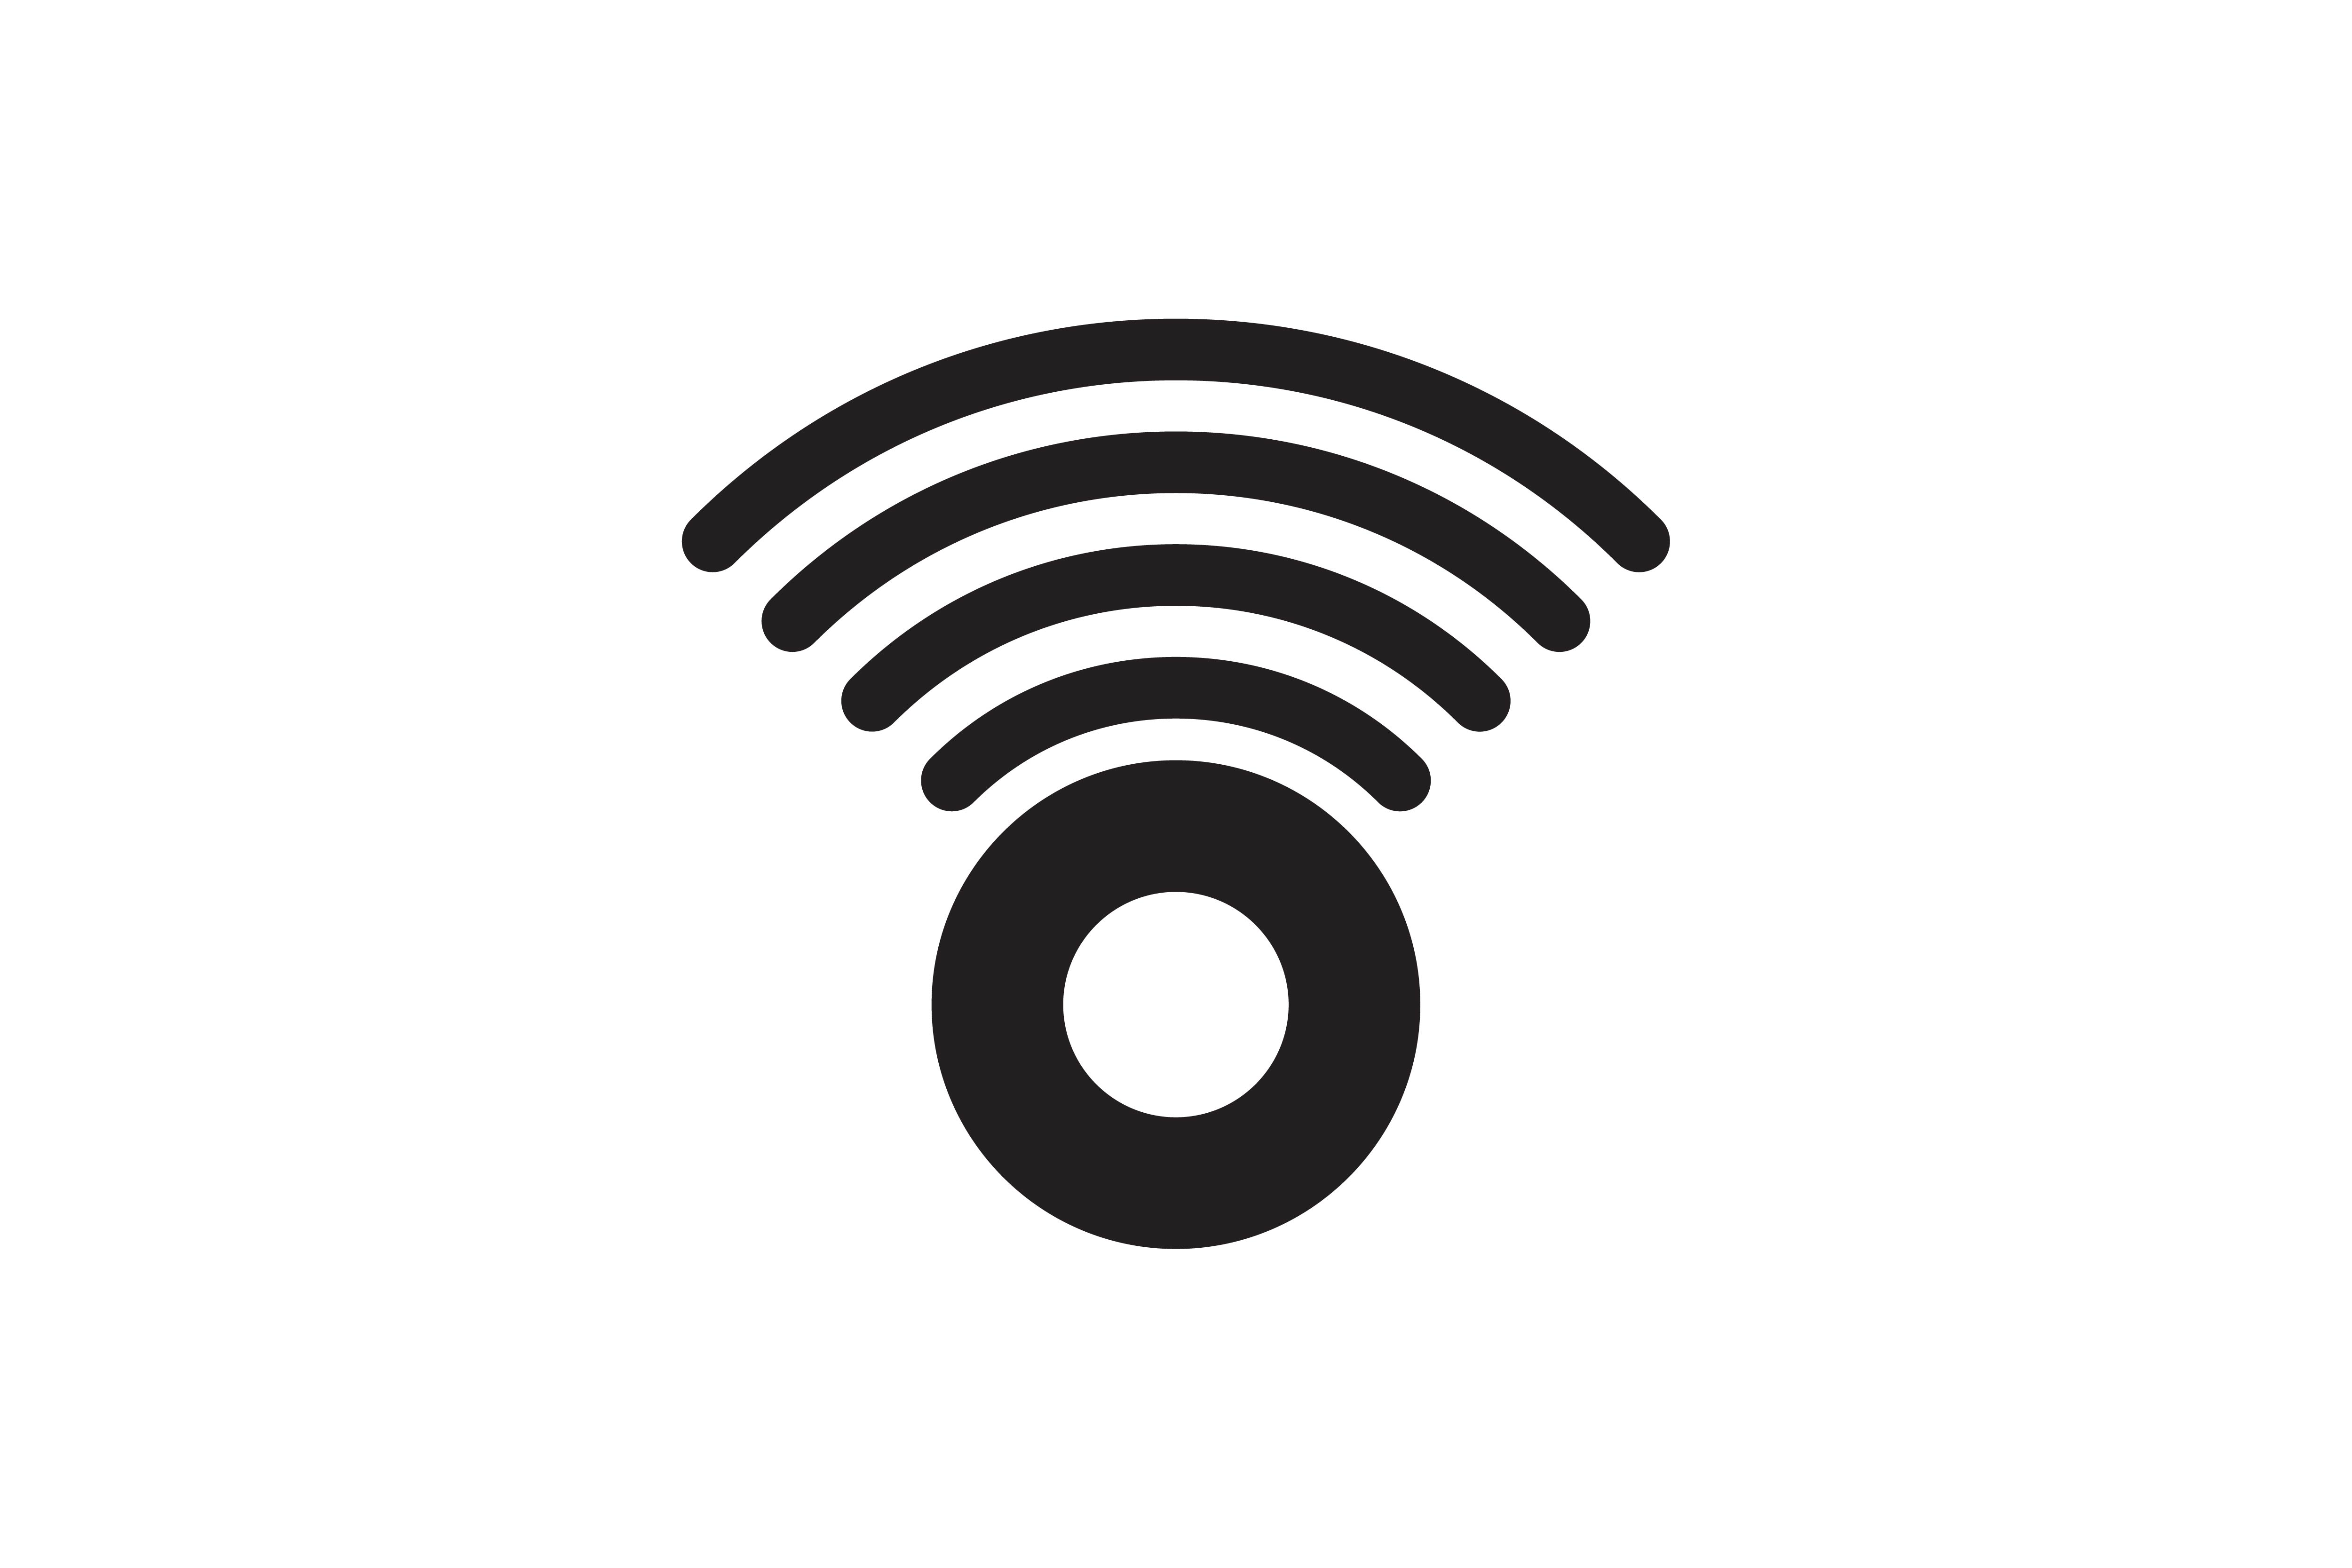 Download Free Signal Wifi Radar Logo Graphic By Yahyaanasatokillah for Cricut Explore, Silhouette and other cutting machines.